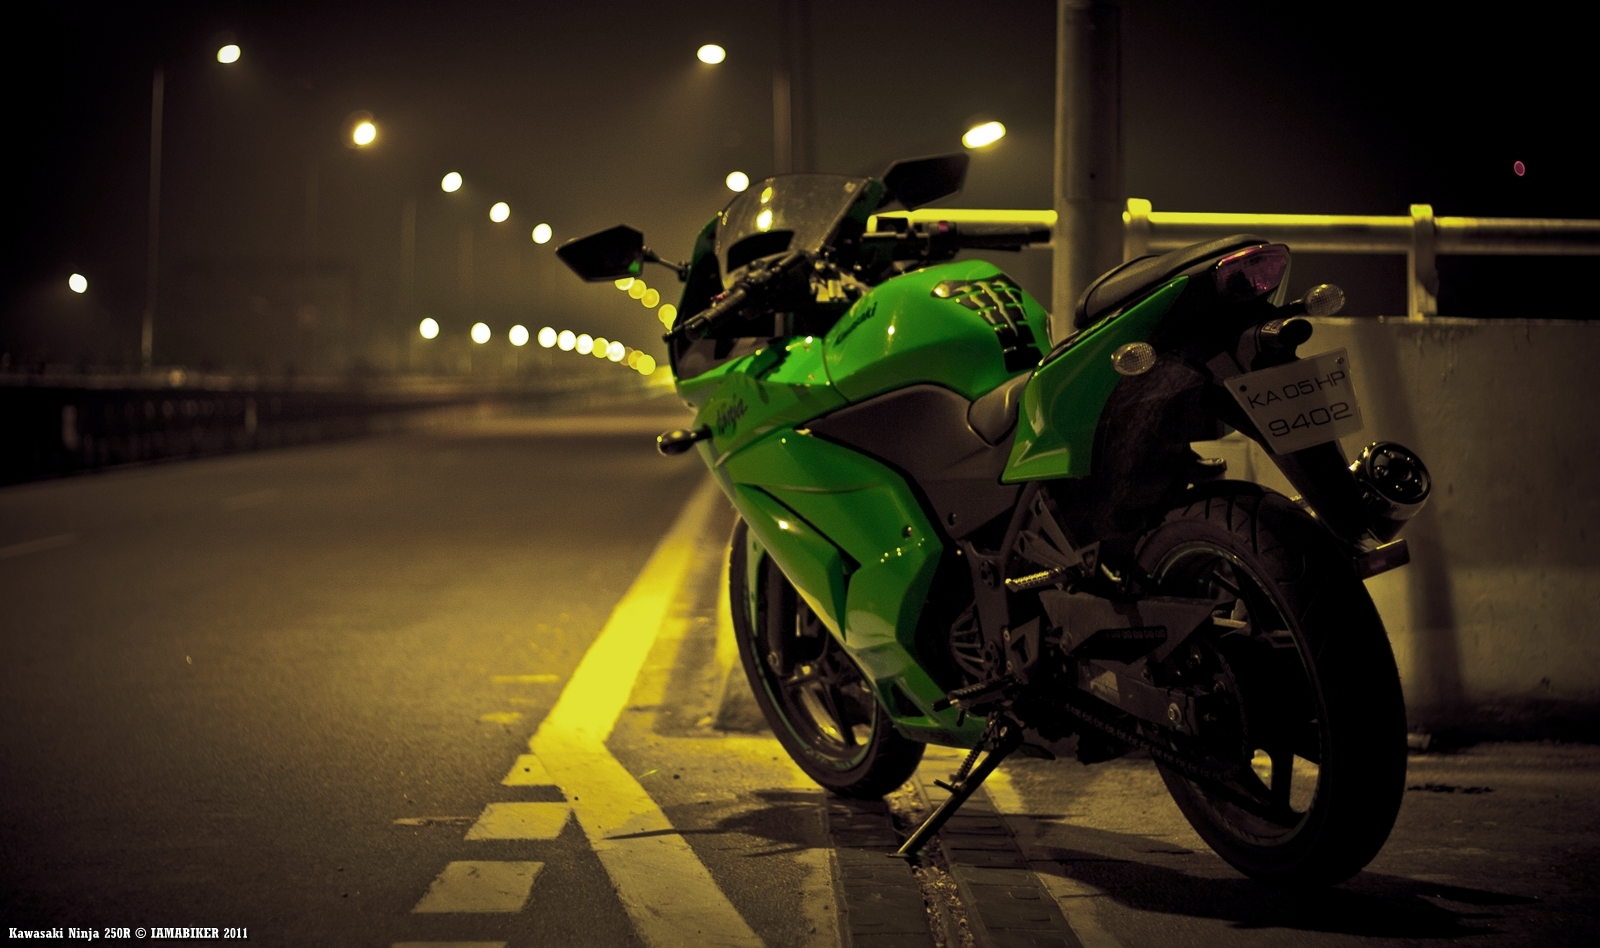 Ninja 250R wallpaper - Happy Diwali 04 IAMABIKER